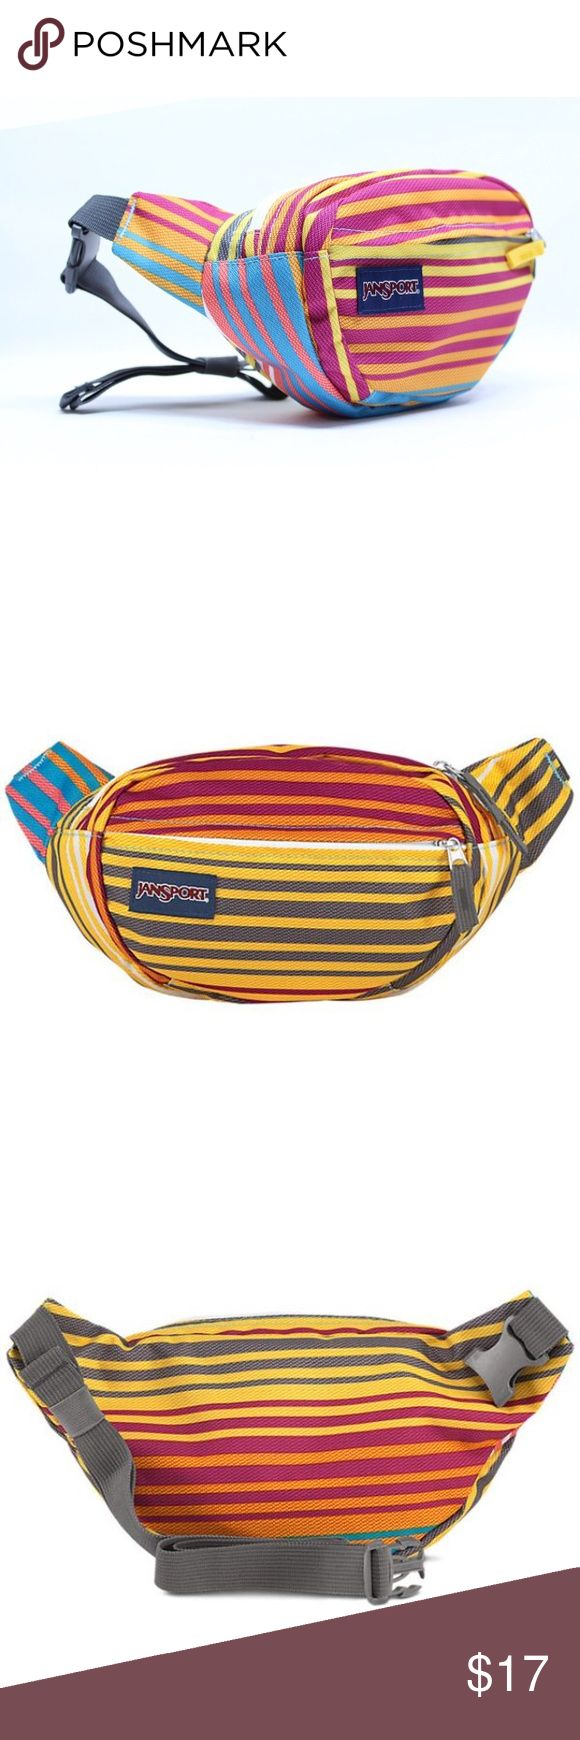 Jansport Fifth Avenue Multi Sunset ST Fanny Pack Stripe pattern varies from stock photos. Have in primarily pink or primarily yellow stripe. Price for one. 🆕 W/ RETAIL TAGS, NEVER WORN ✖️NO TRADES • NO PP • NO MERC@RI  ✔️ADD'L INFO/PICS BY REQUEST ✔️POSTED = AVAILABLE  ✔REASONABLE OFFERS WELCOMED ✔BUNDLE 2+ FOR 10% DISCOUNT Jansport Bags